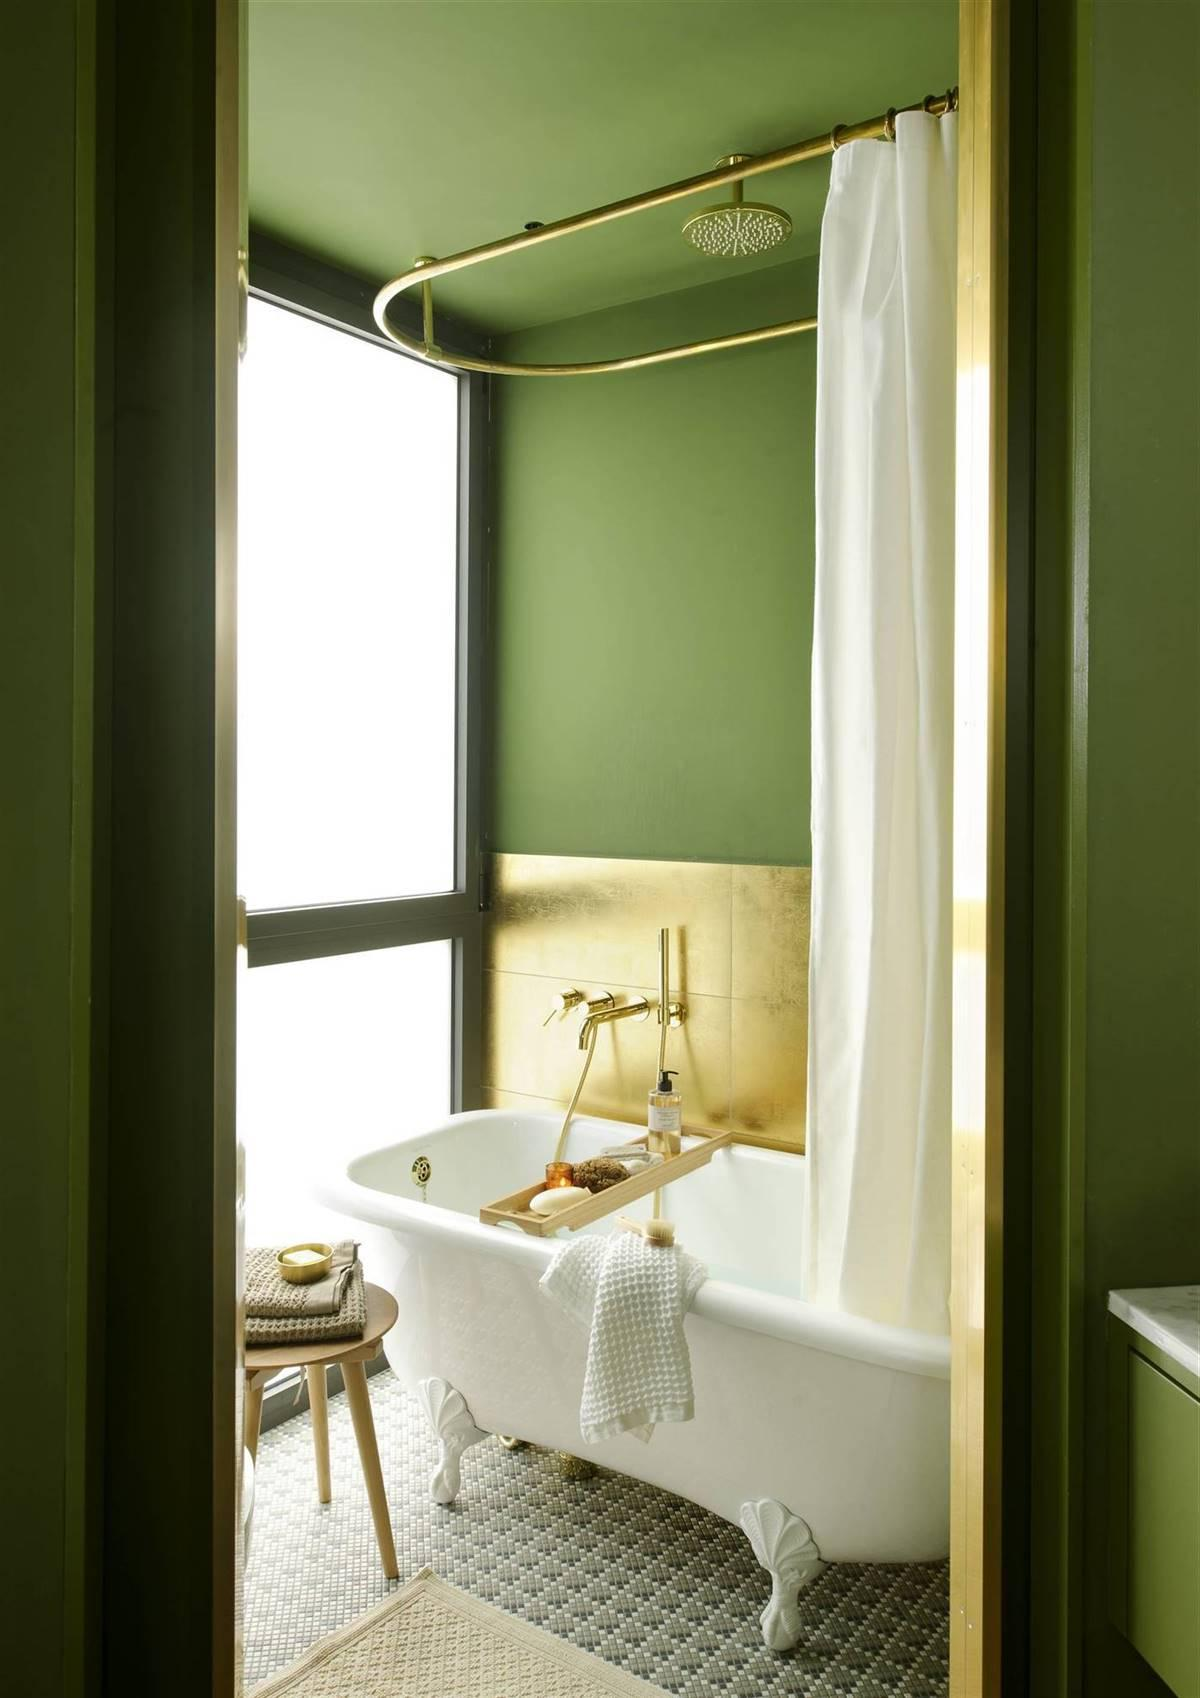 BATHTUB WITH SHOWER IN GREEN AND GOLD